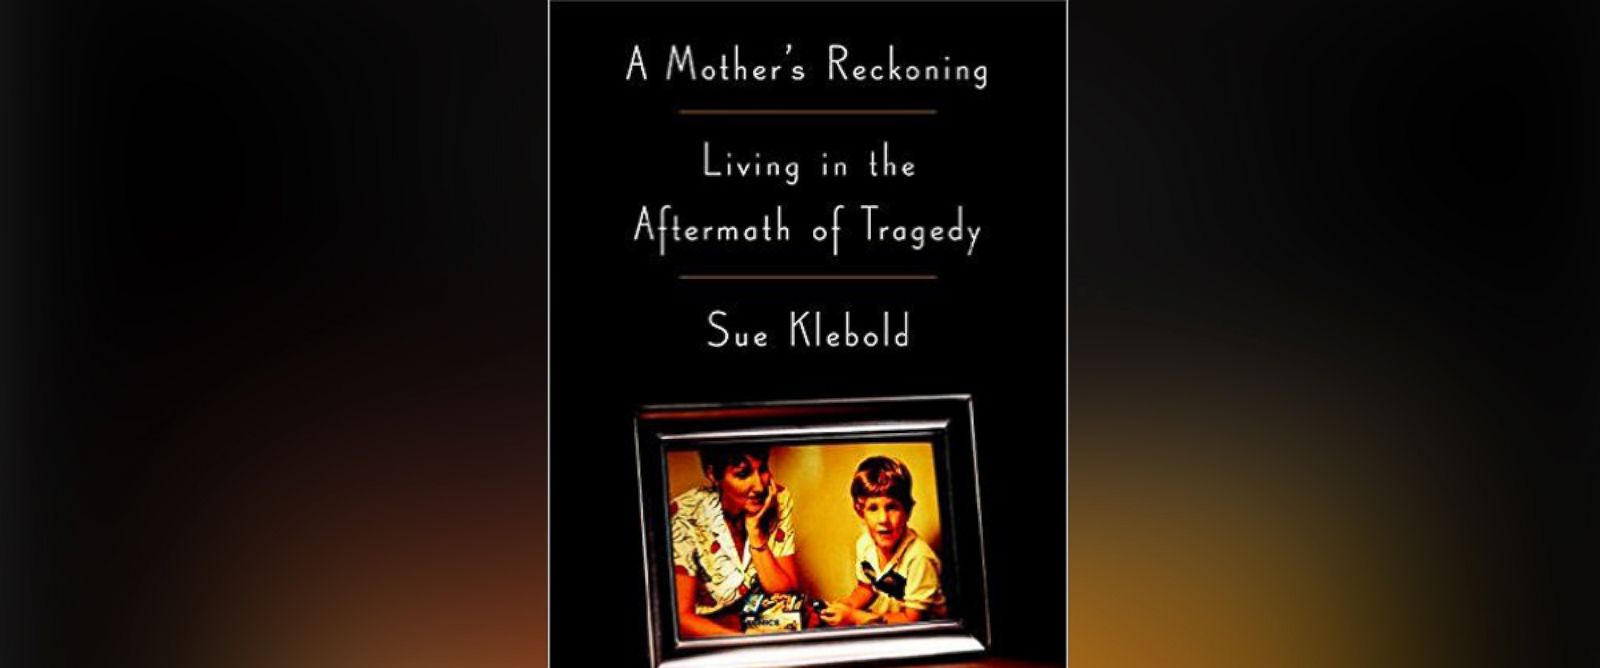 PHOTO: The book cover for A Mothers Reckoning: Living in the Aftermath of Tragedy by Sue Klebold.